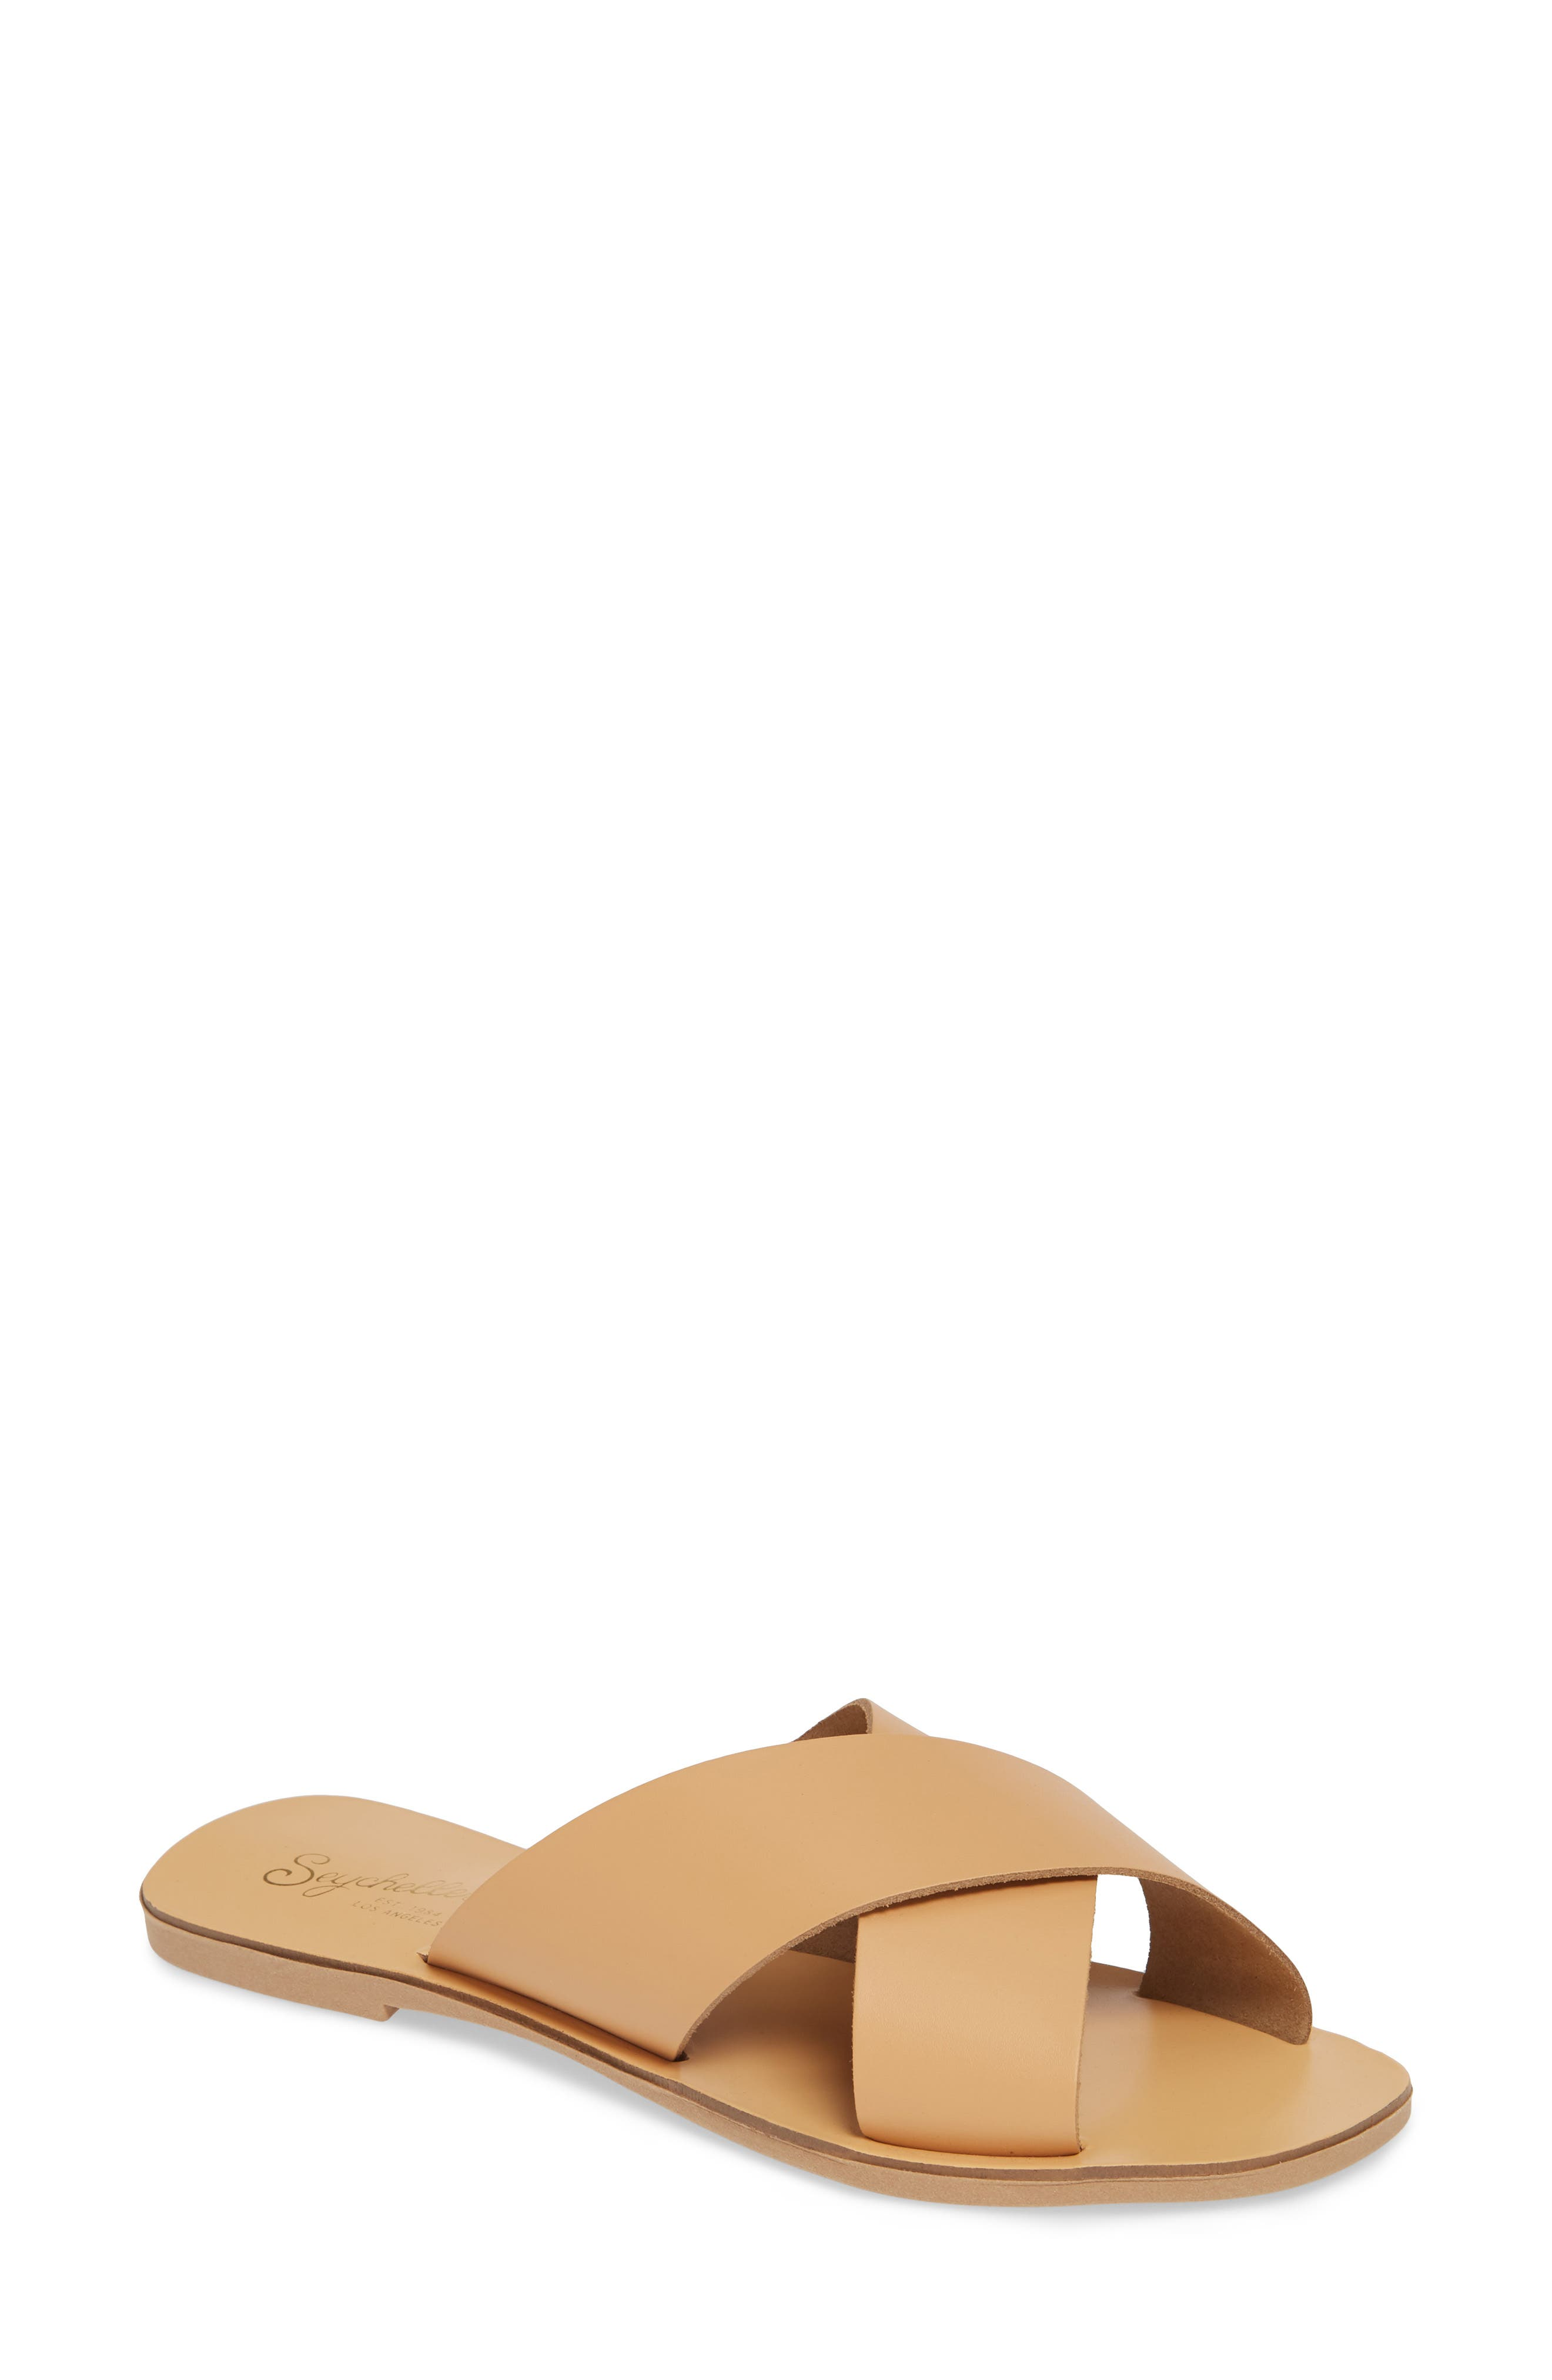 Total Relaxation Slide Sandal,                             Main thumbnail 1, color,                             BEIGE LEATHER